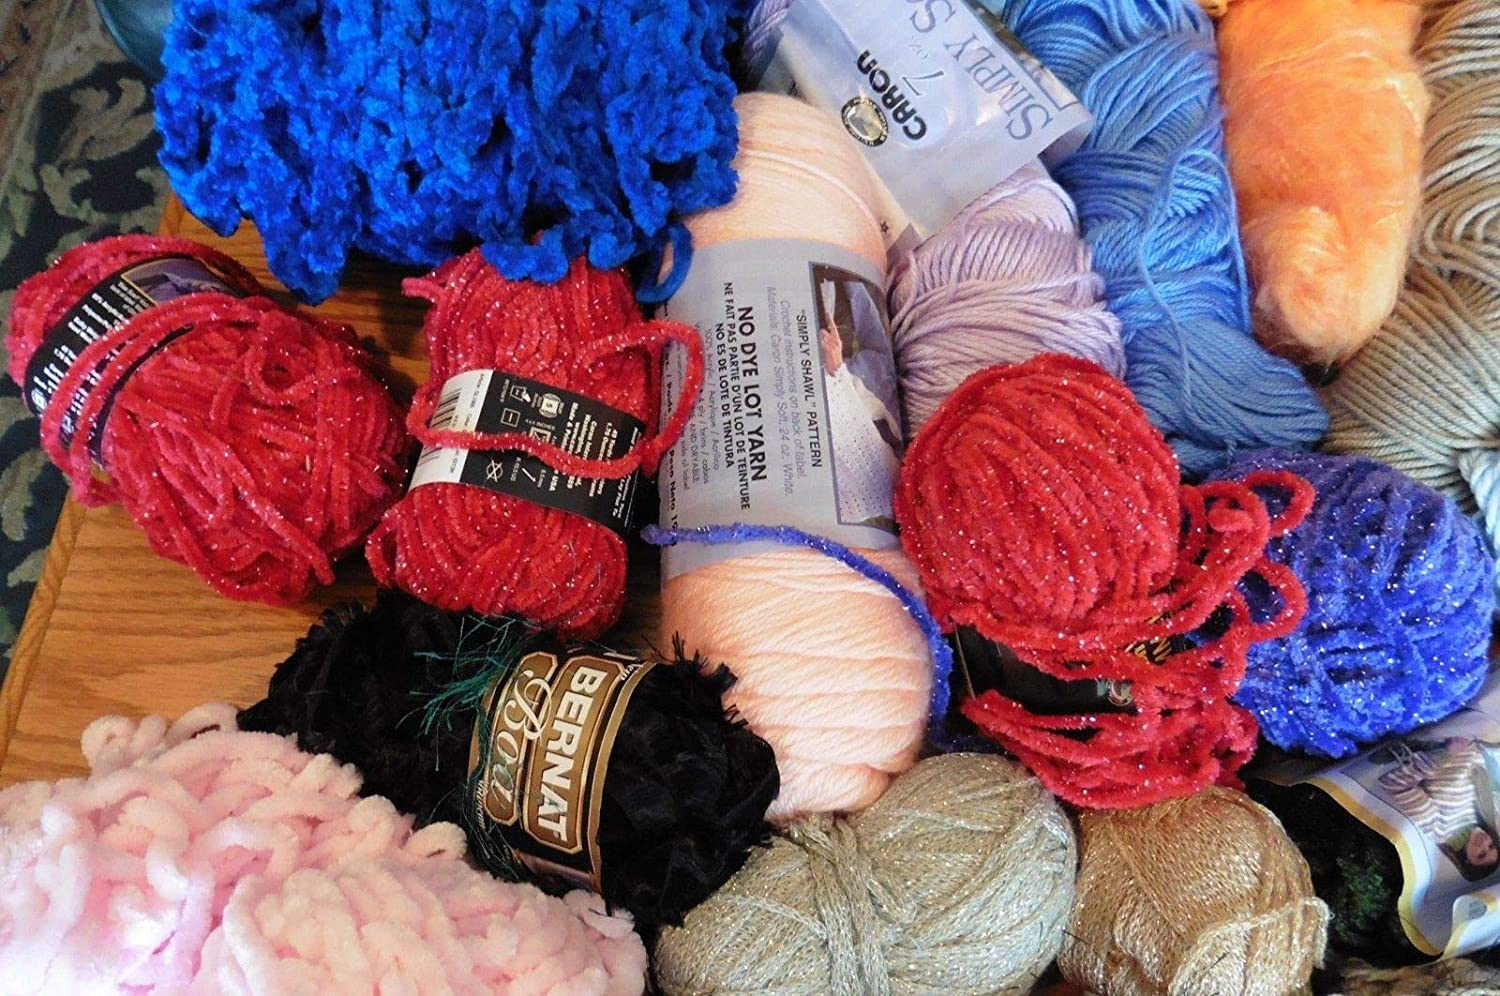 Amazon.com: Lot of Colorful Yarn Skeins Crochet knitting ...